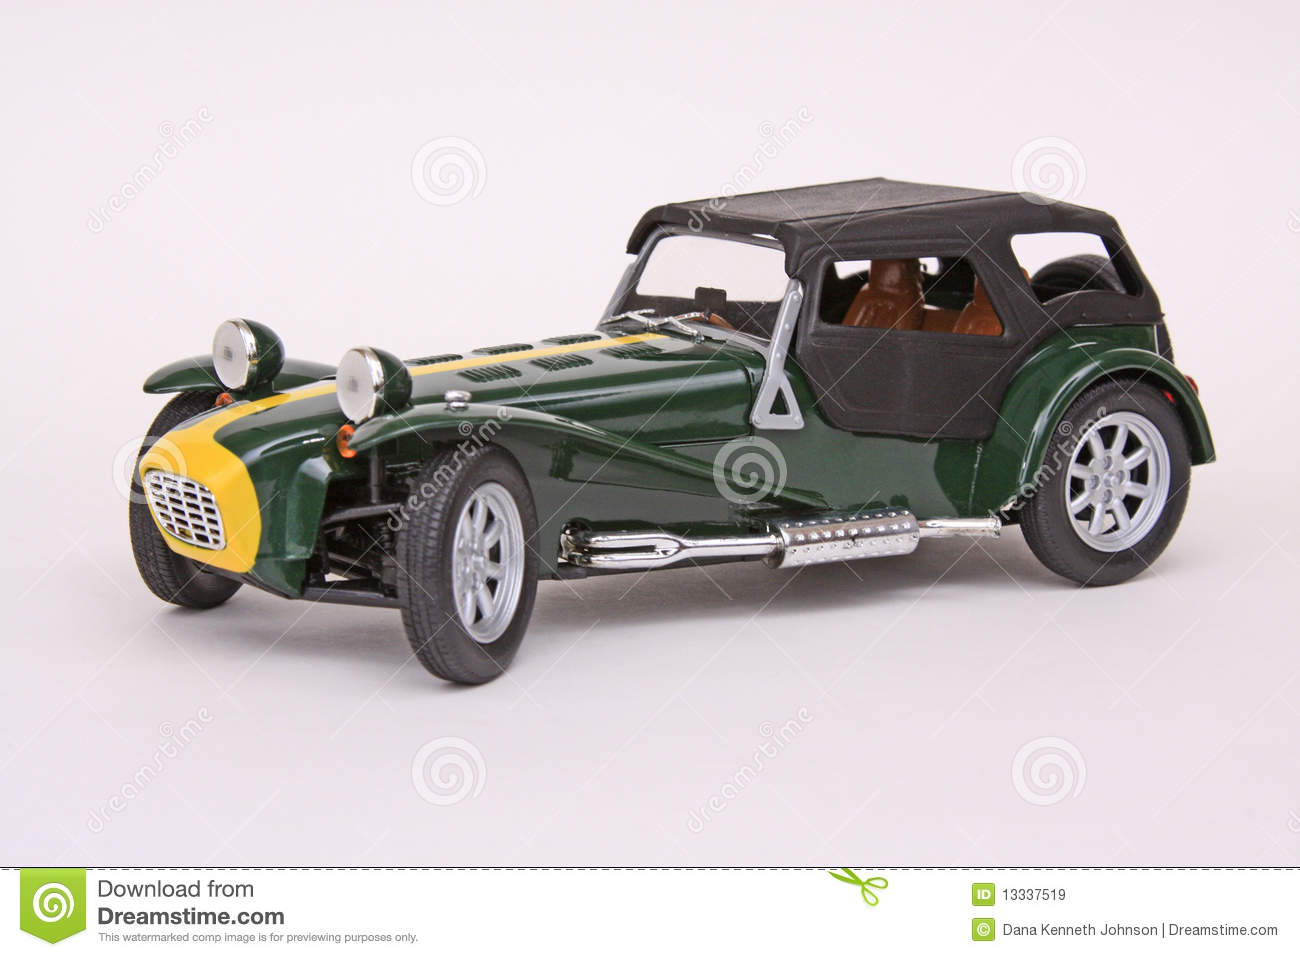 lotus caterham super seven stock image image of sport 13337519. Black Bedroom Furniture Sets. Home Design Ideas